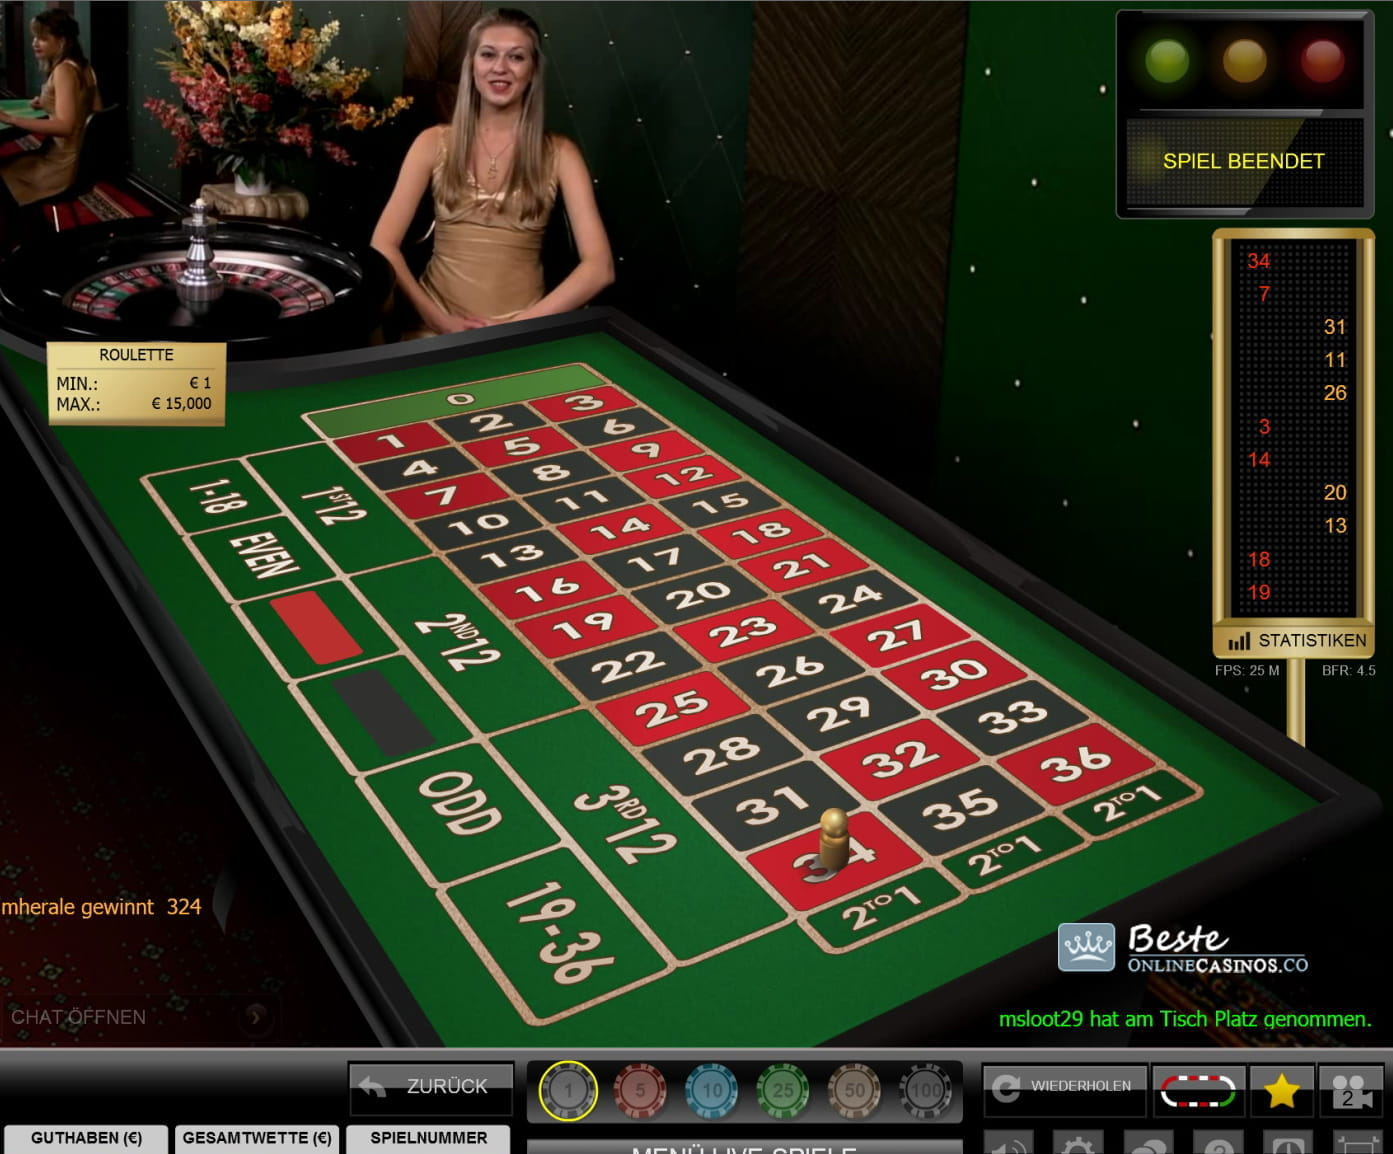 Das beste casino casino online no deposit offer